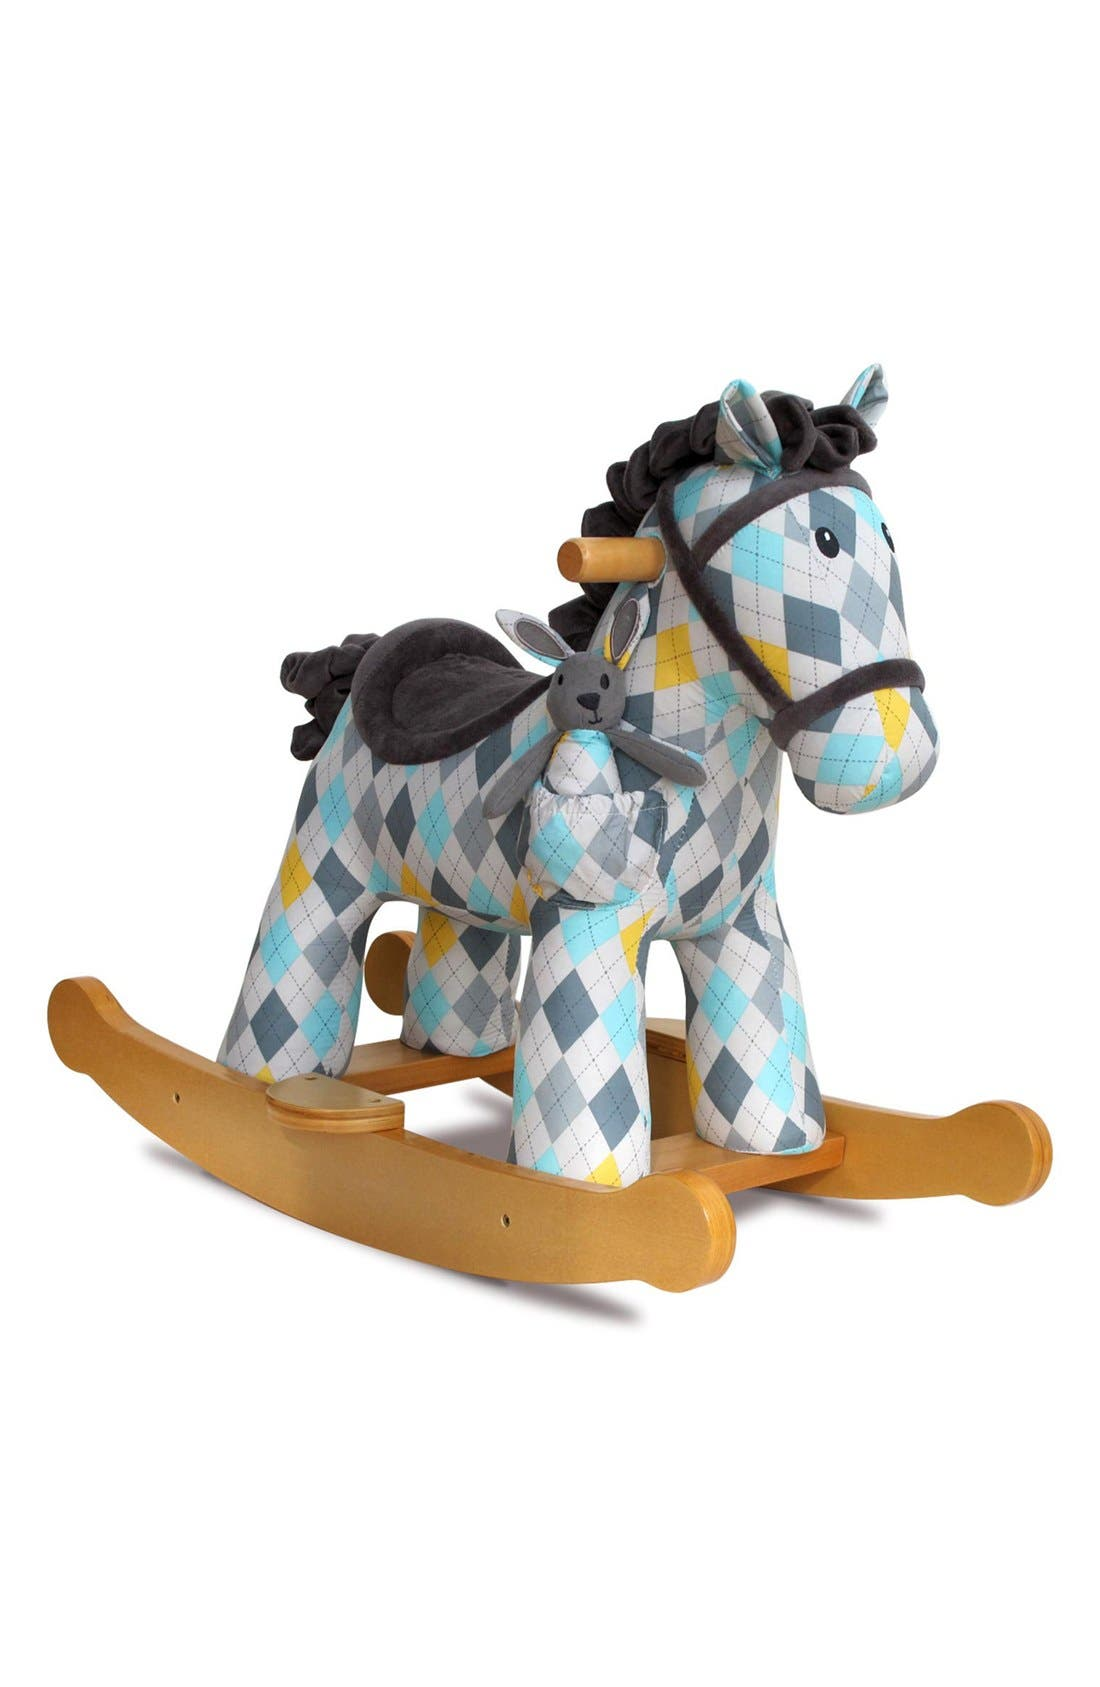 Lewis & Fitz Rocking Horse & Stuffed Animal,                             Main thumbnail 1, color,                             Blue Plaid